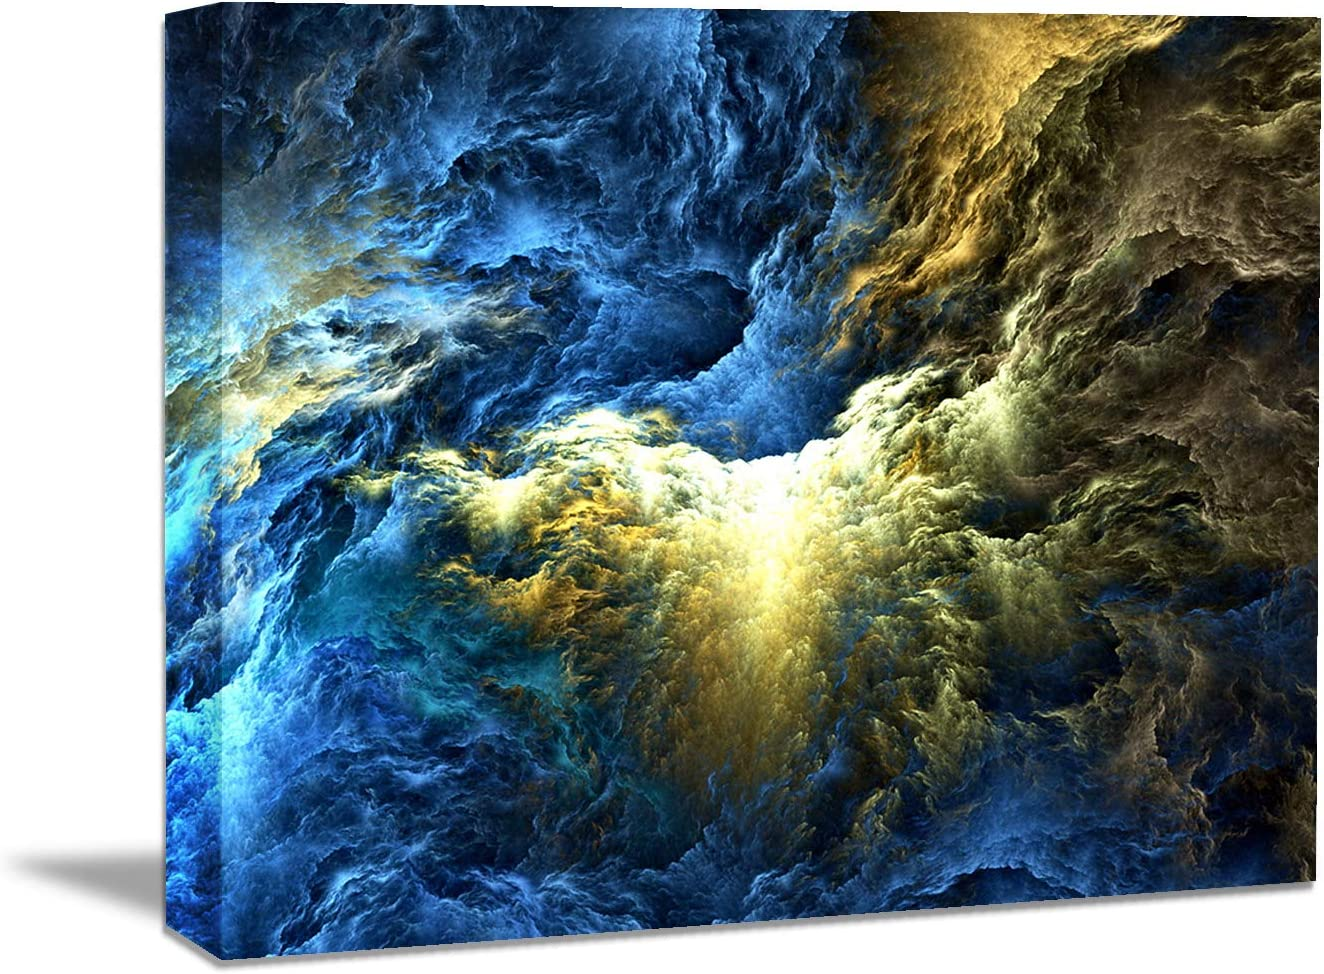 Looife Blue and Yellow Abstract Clound Patten Canvas Wall Art, 30x20 Inch Colorful Textured Picture Prints Wall Decor, Stretched on Wood Frame and Ready to Hang